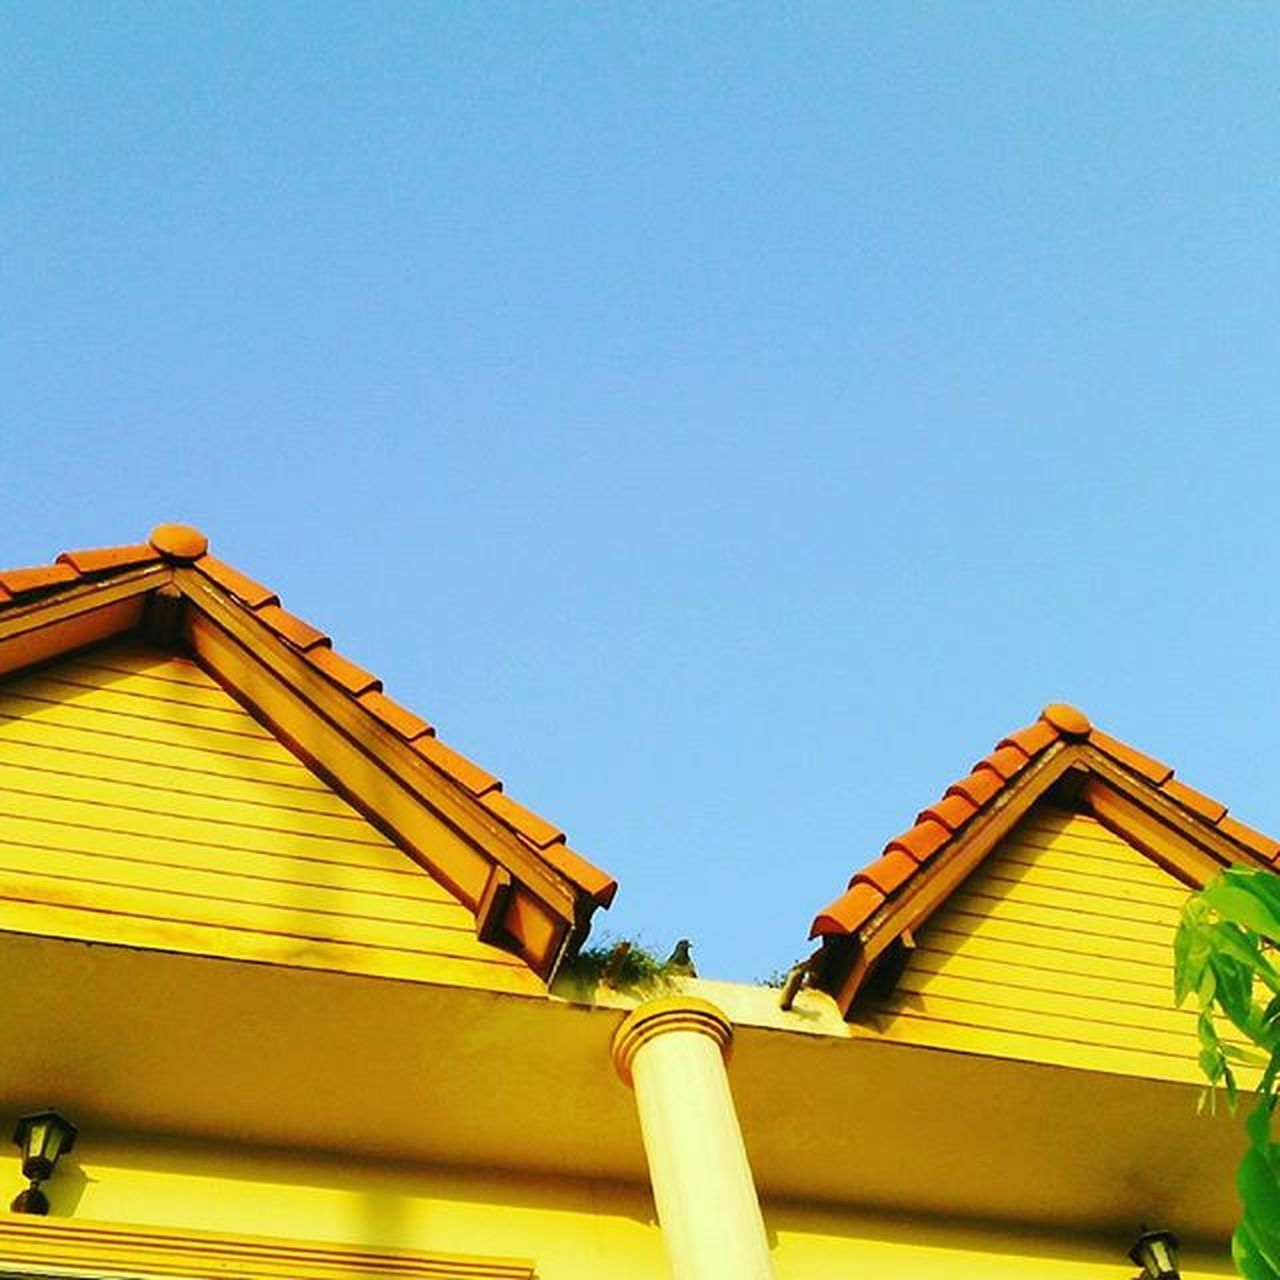 roof, architecture, yellow, built structure, house, building exterior, low angle view, blue, outdoors, clear sky, day, sky, no people, multi colored